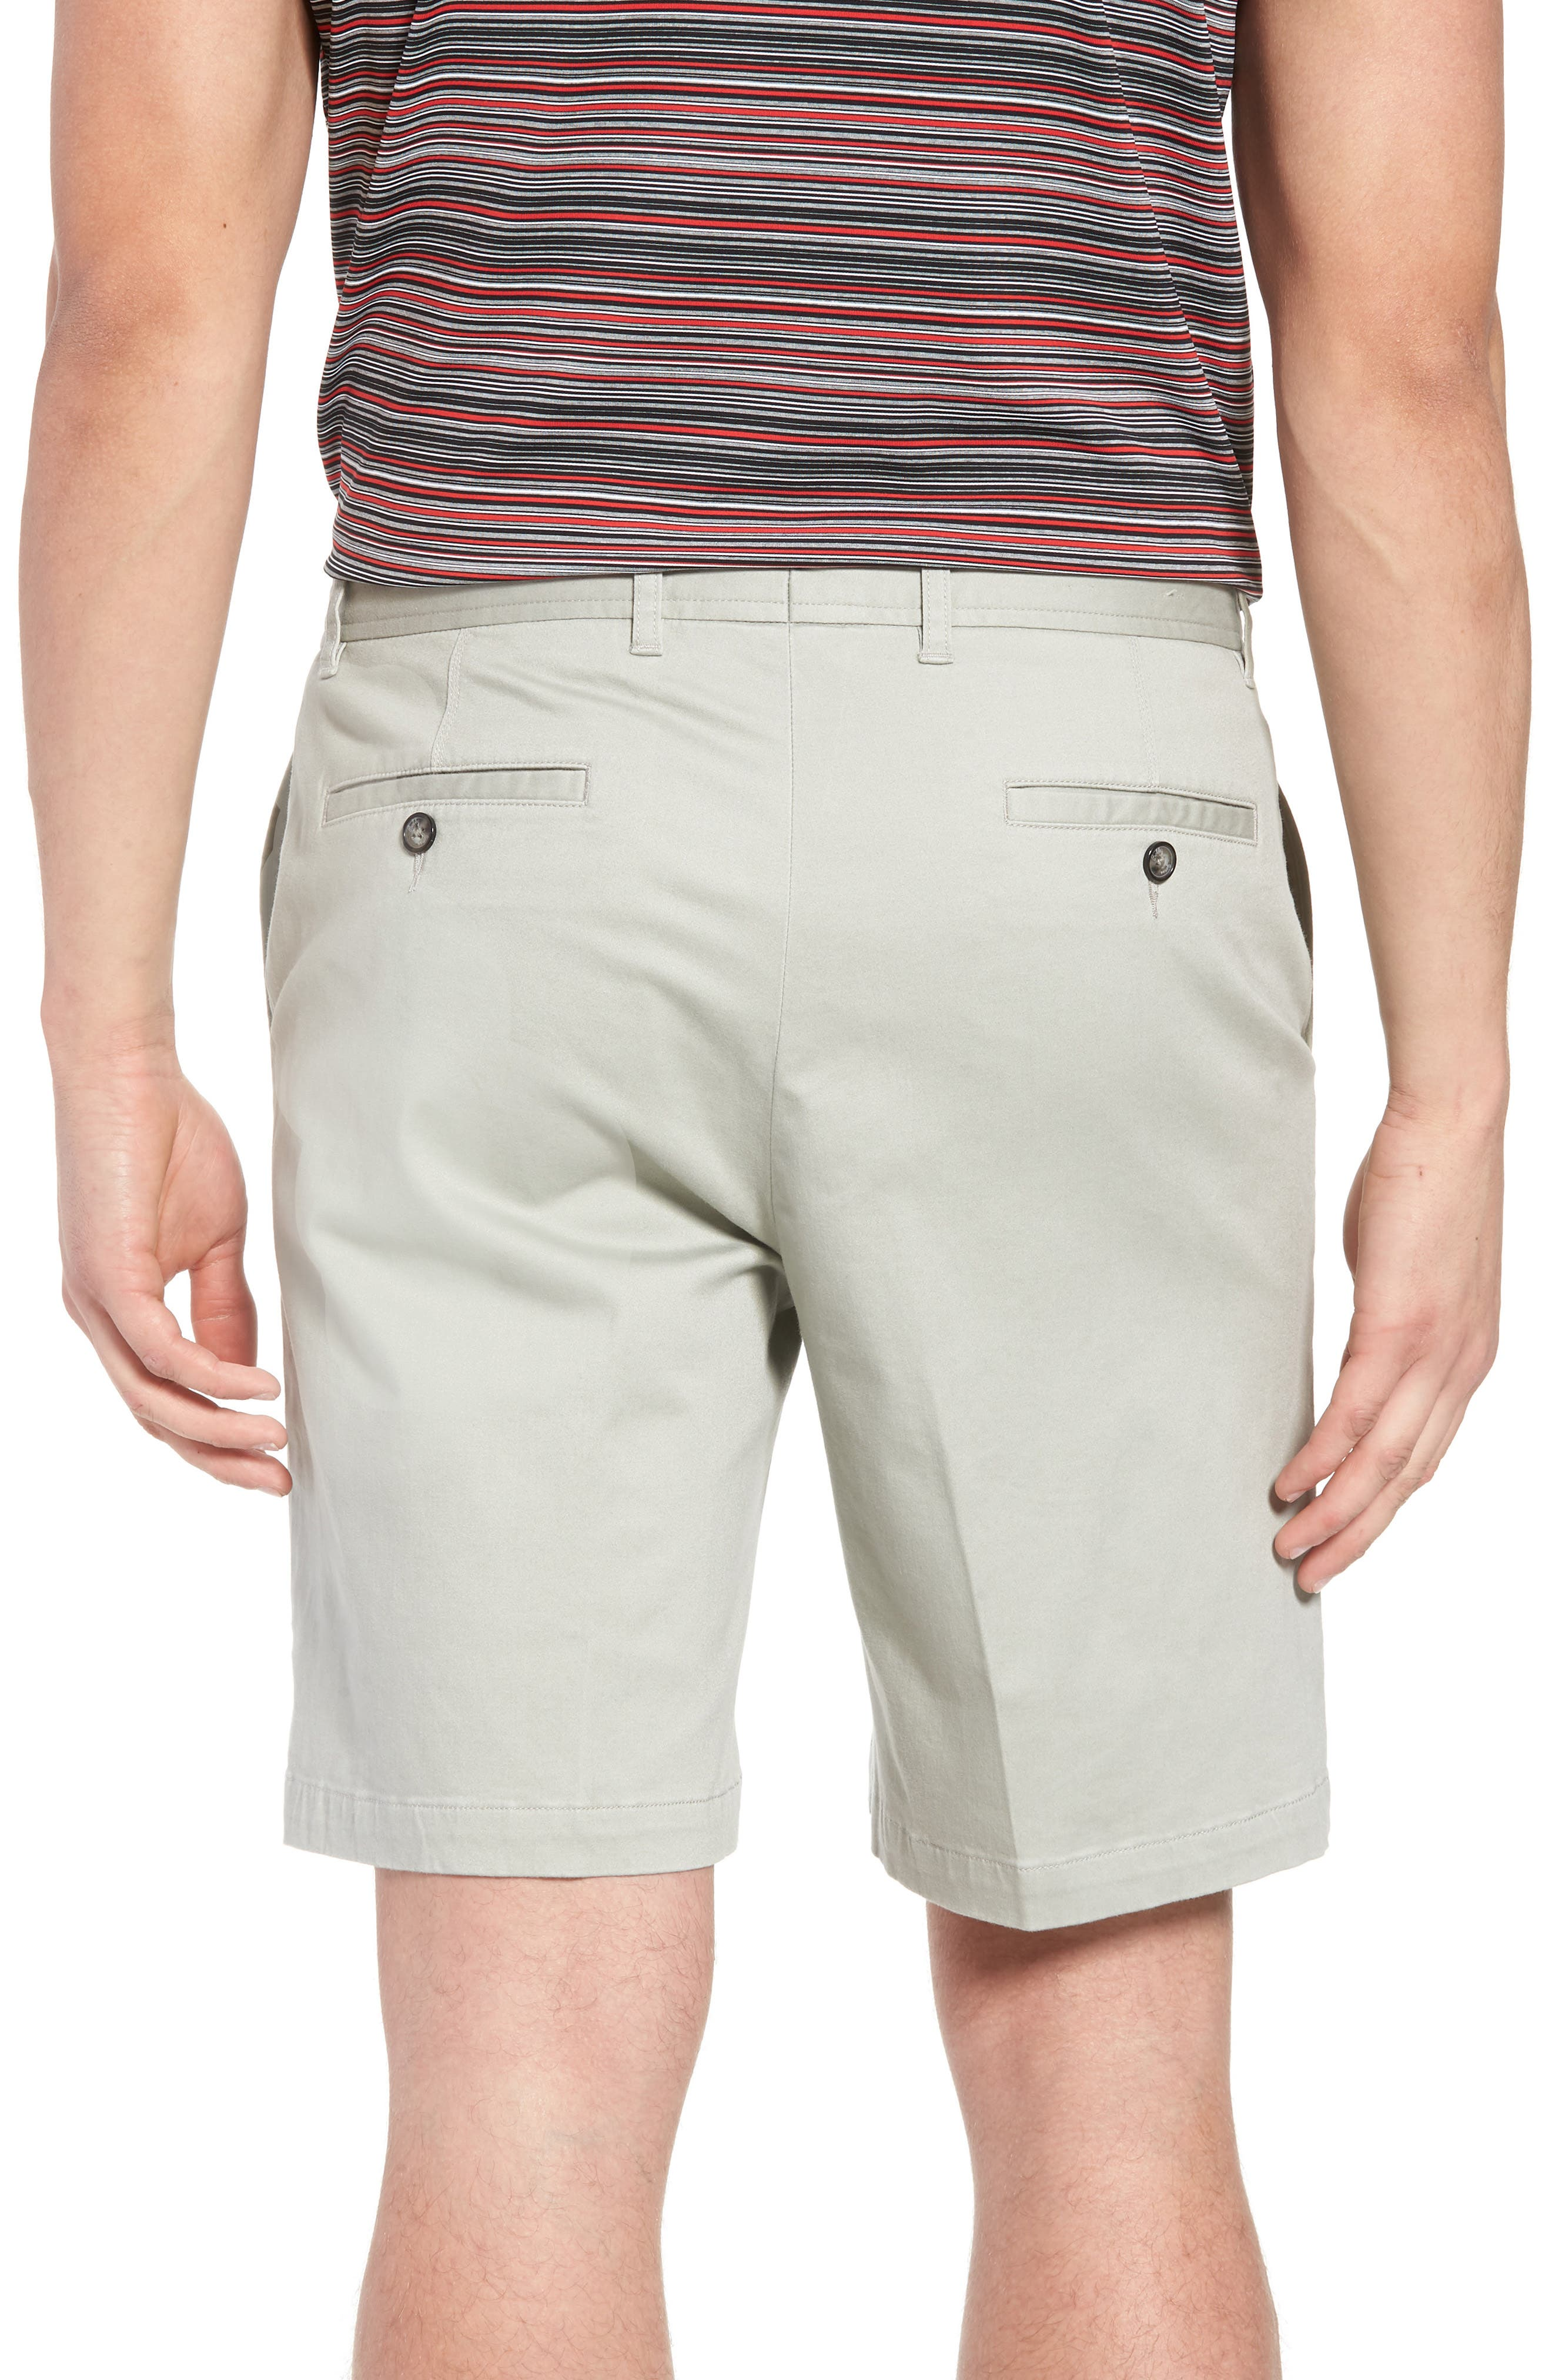 St. Charles Stretch Twill Shorts,                             Alternate thumbnail 2, color,                             051